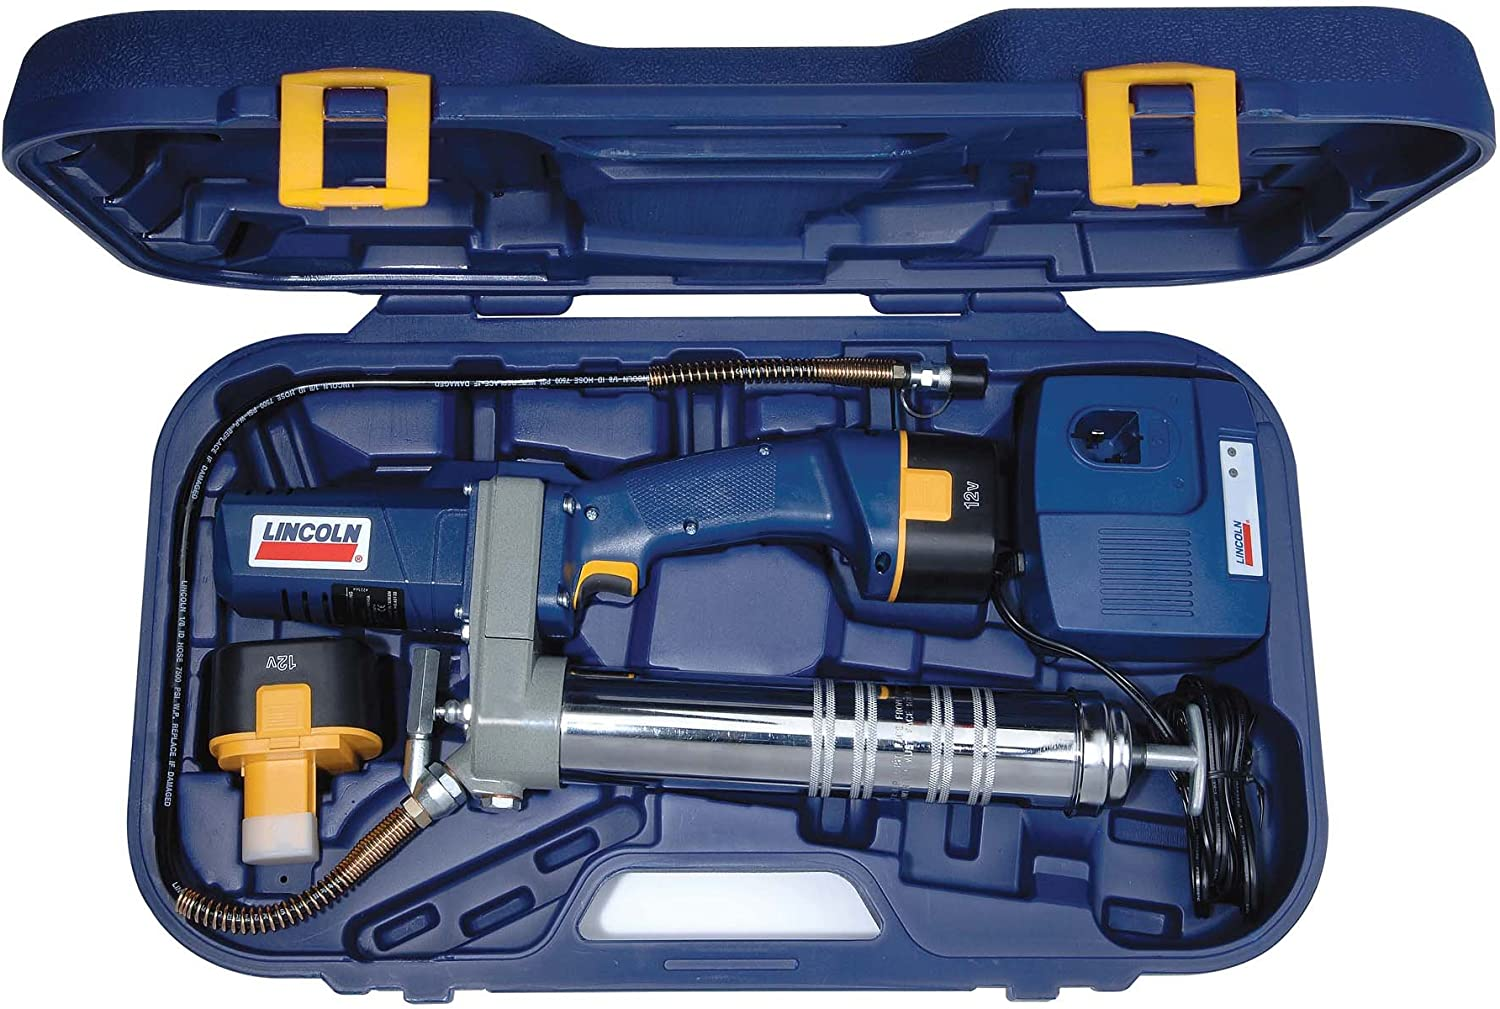 Amazon.com: Lincoln Lubrication 1244 PowerLuber 12 Volt Cordless Grease Gun  with Battery Kit: Automotive